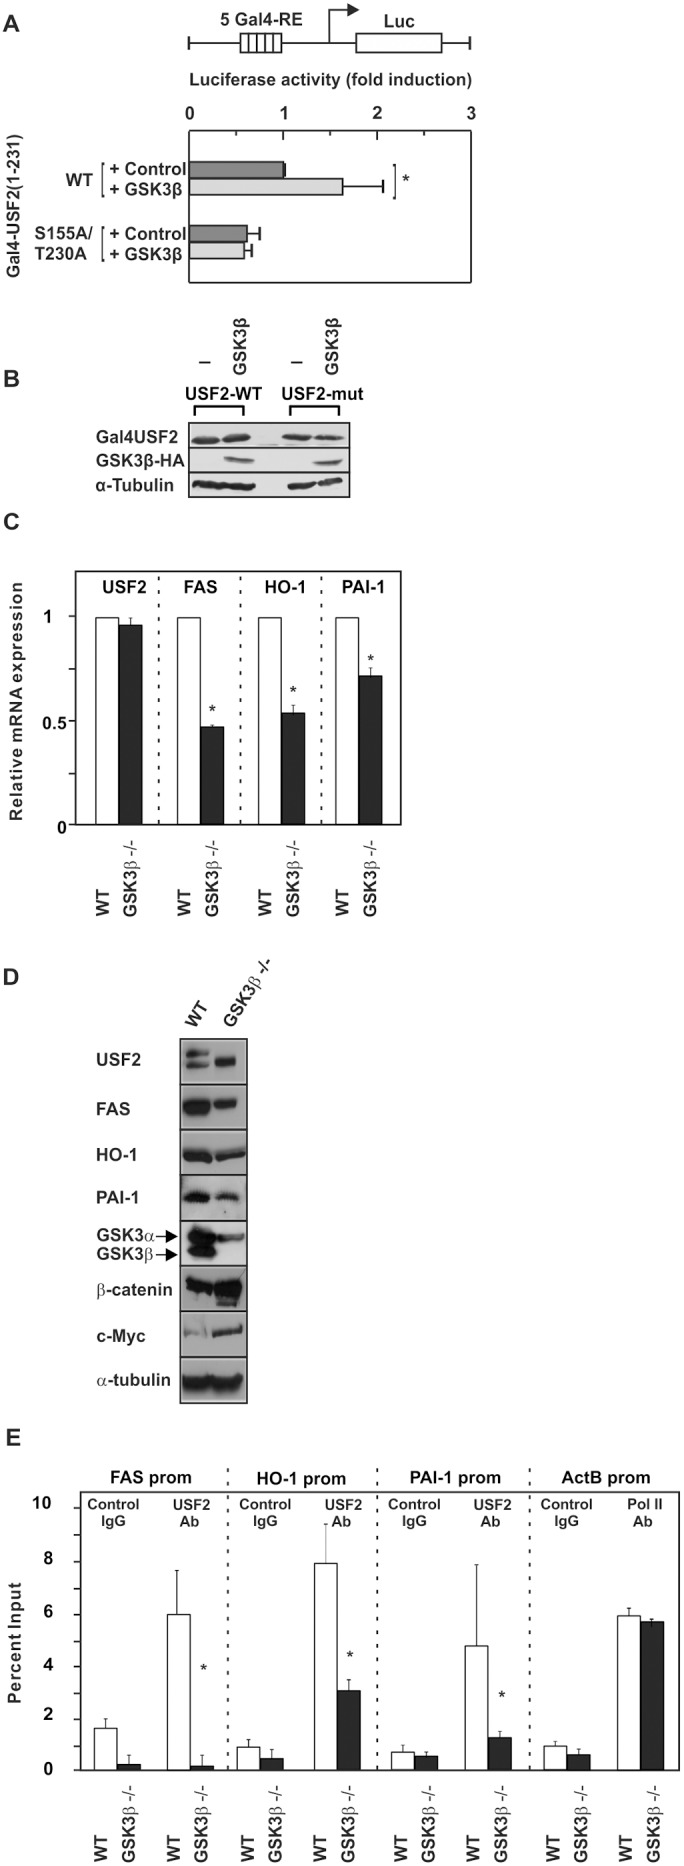 GSK3β-mediated phosphorylation of USF2 affects its transactivity, DNA binding and target gene expression. (A) HeLa cells were cotransfected with pFR-5Gal4-RE-Luc, an expression vector for constitutively active GSK3β-S9A and WT or mutant pcDNA6-Gal4-USF2 (1-231) or the appropriate empty Gal4 vector. The luciferase activity was calculated as fold induction compared to the Gal4-USF2 (1-231)-WT luciferase activity after subtracting the values from the empty Gal4 expression vector. *, significant differences control vs. GSK3β. (B) Representative Western blot of the transfected constructs. 50 µg of protein from transfected cells were probed with an antibody against Gal4, HA-tag and α-tubulin. (C) Quantitative RT-PCR analyses of FAS, HO-1, PAI-1 and USF2 mRNA levels in GSK3β +/+ and GSK3β −/− cells. *, significant differences WT vs. GSK3β −/− . (D) Western Blot analyses of FAS, HO-1 and PAI-1 expression in GSK3β +/+ and GSK3β −/− cells . 50 µg of protein were subjected to Western analysis with antibodies against FAS, HO-1, PAI-1 or β-catenin, c-Myc or α-tubulin; the latter served as a loading control. (E) ChIP was performed in GSK3β +/+ and GSK3β −/− cells with either USF2 antibody, control IgG or RNA Pol II antibody. The quantitative PCR was performed with primers amplifying the FAS, HO-1, and PAI-1 promoter containing the USF2 binding sites, and with primers amplifying the β-actin promoter binding RNA Pol II as outlined in Materials and Methods . *, significant differences WT vs. GSK3β −/− .